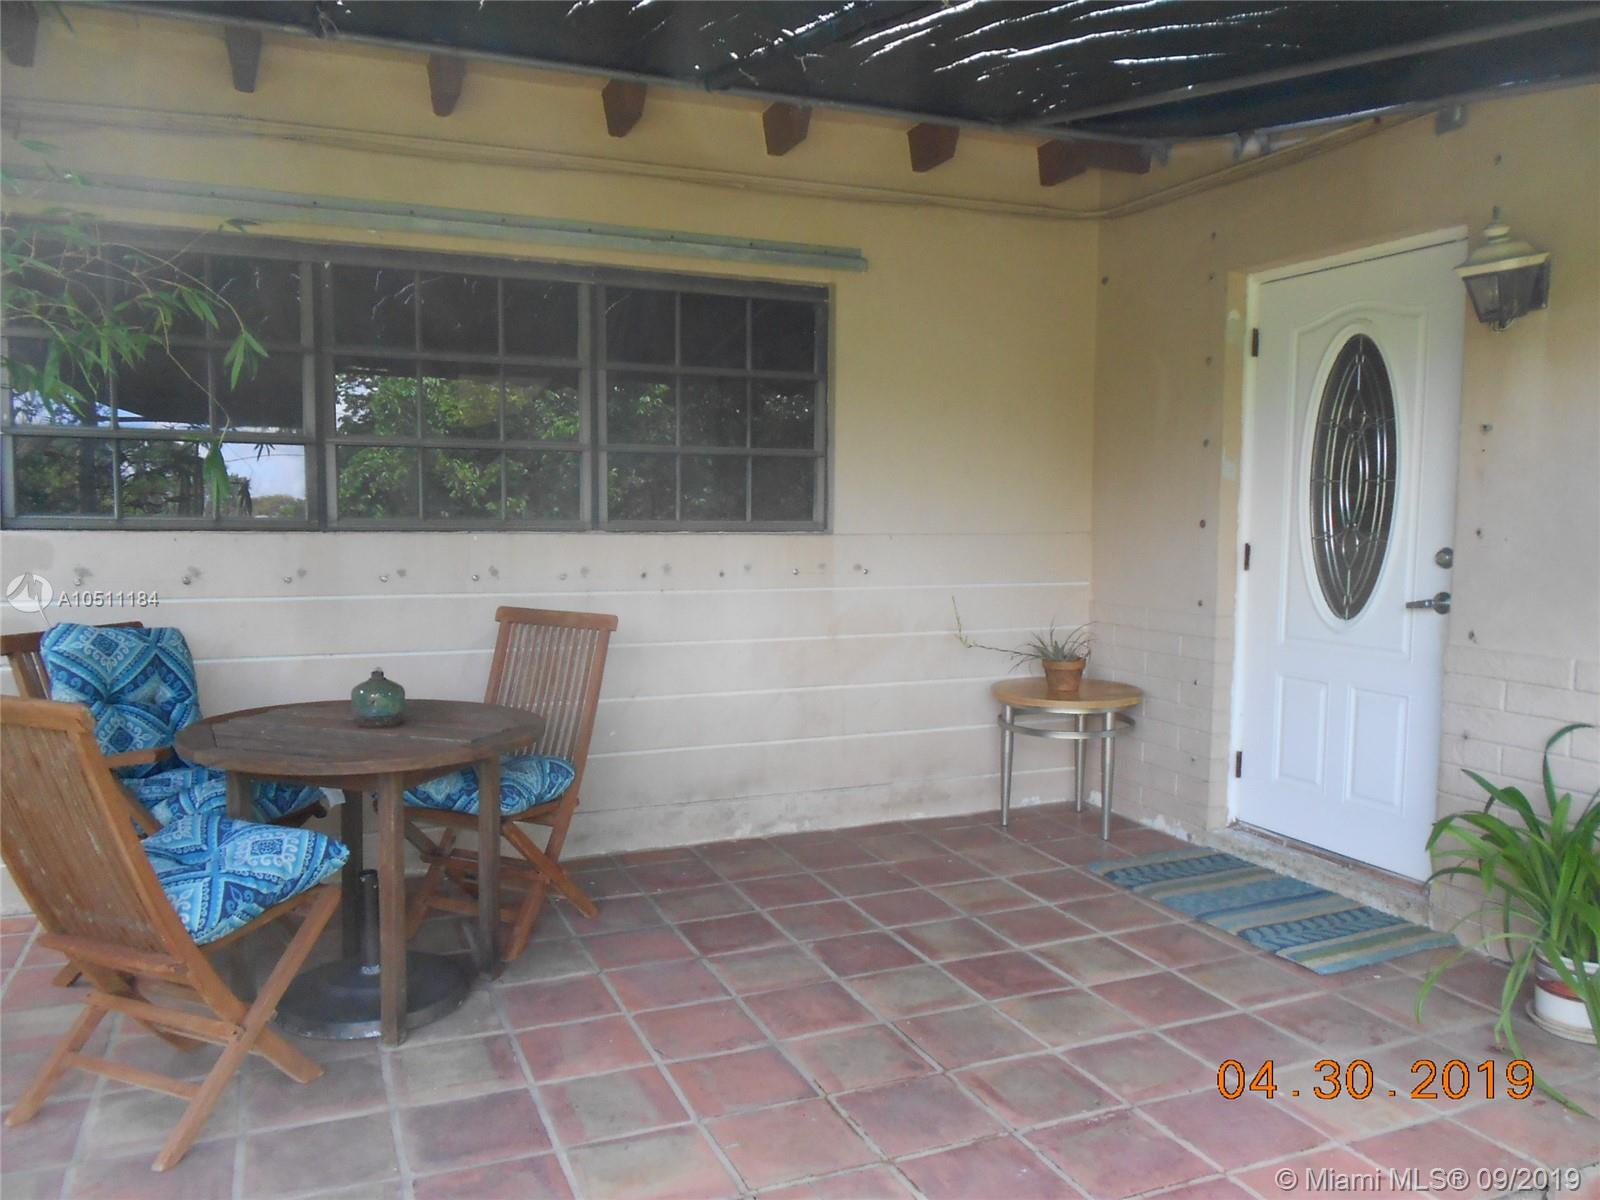 29750 SW 184  For Sale A10511184, FL